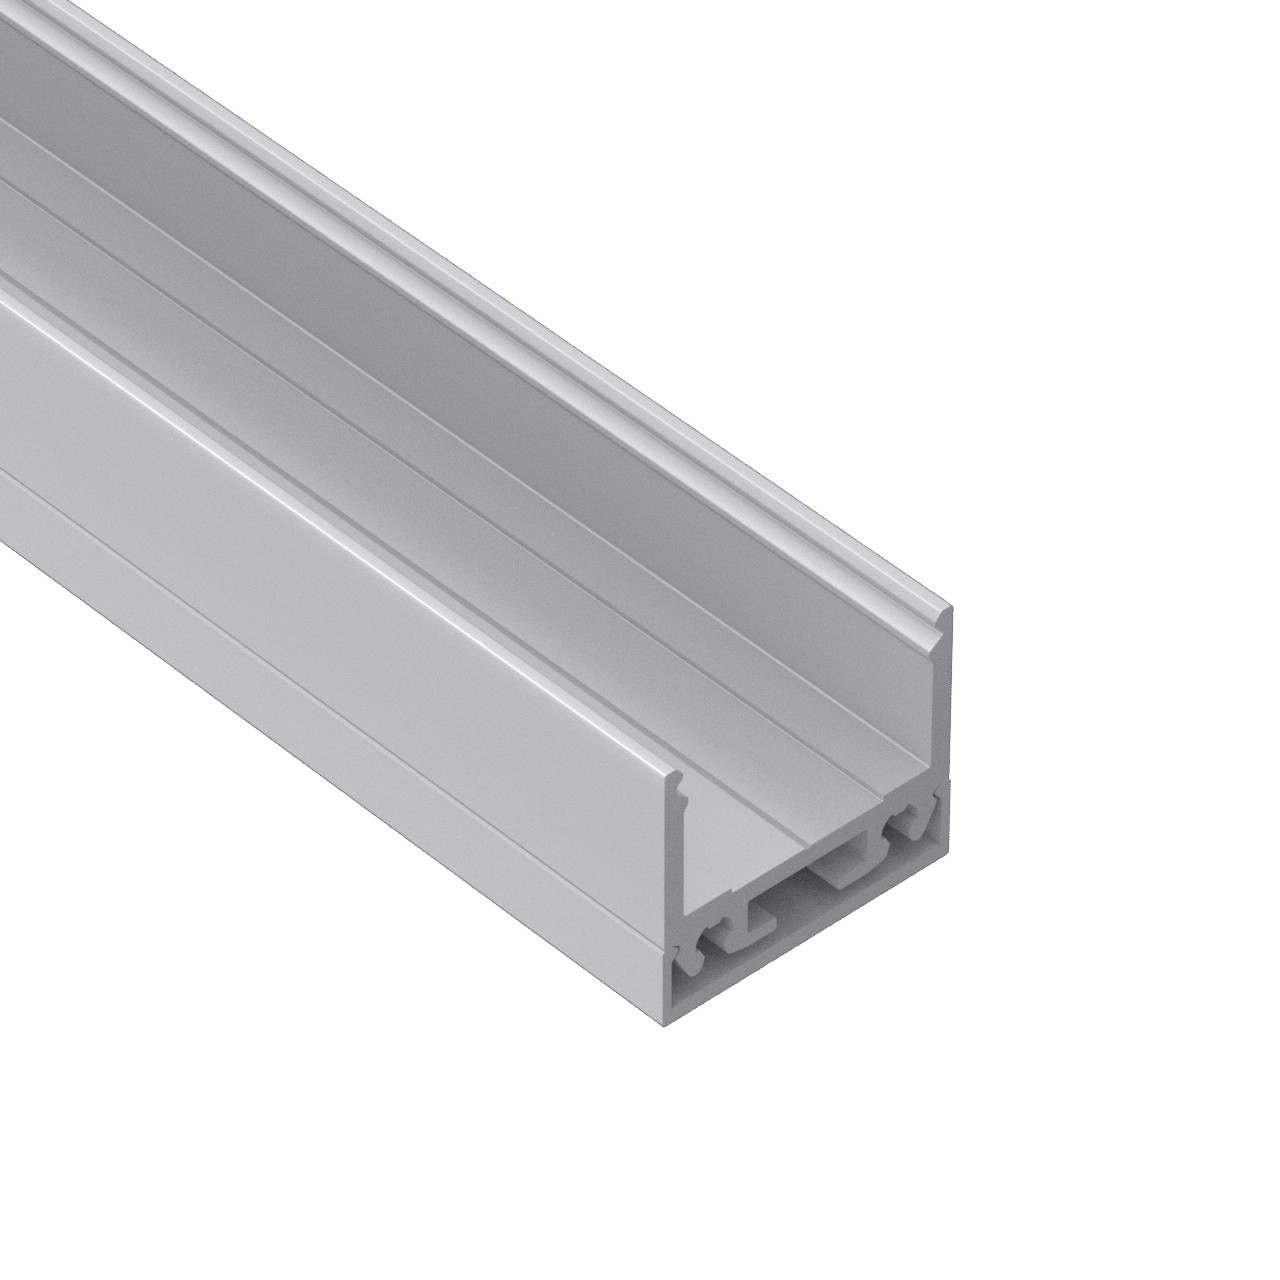 AT12N Surface square led profile 19.5x16.5mm